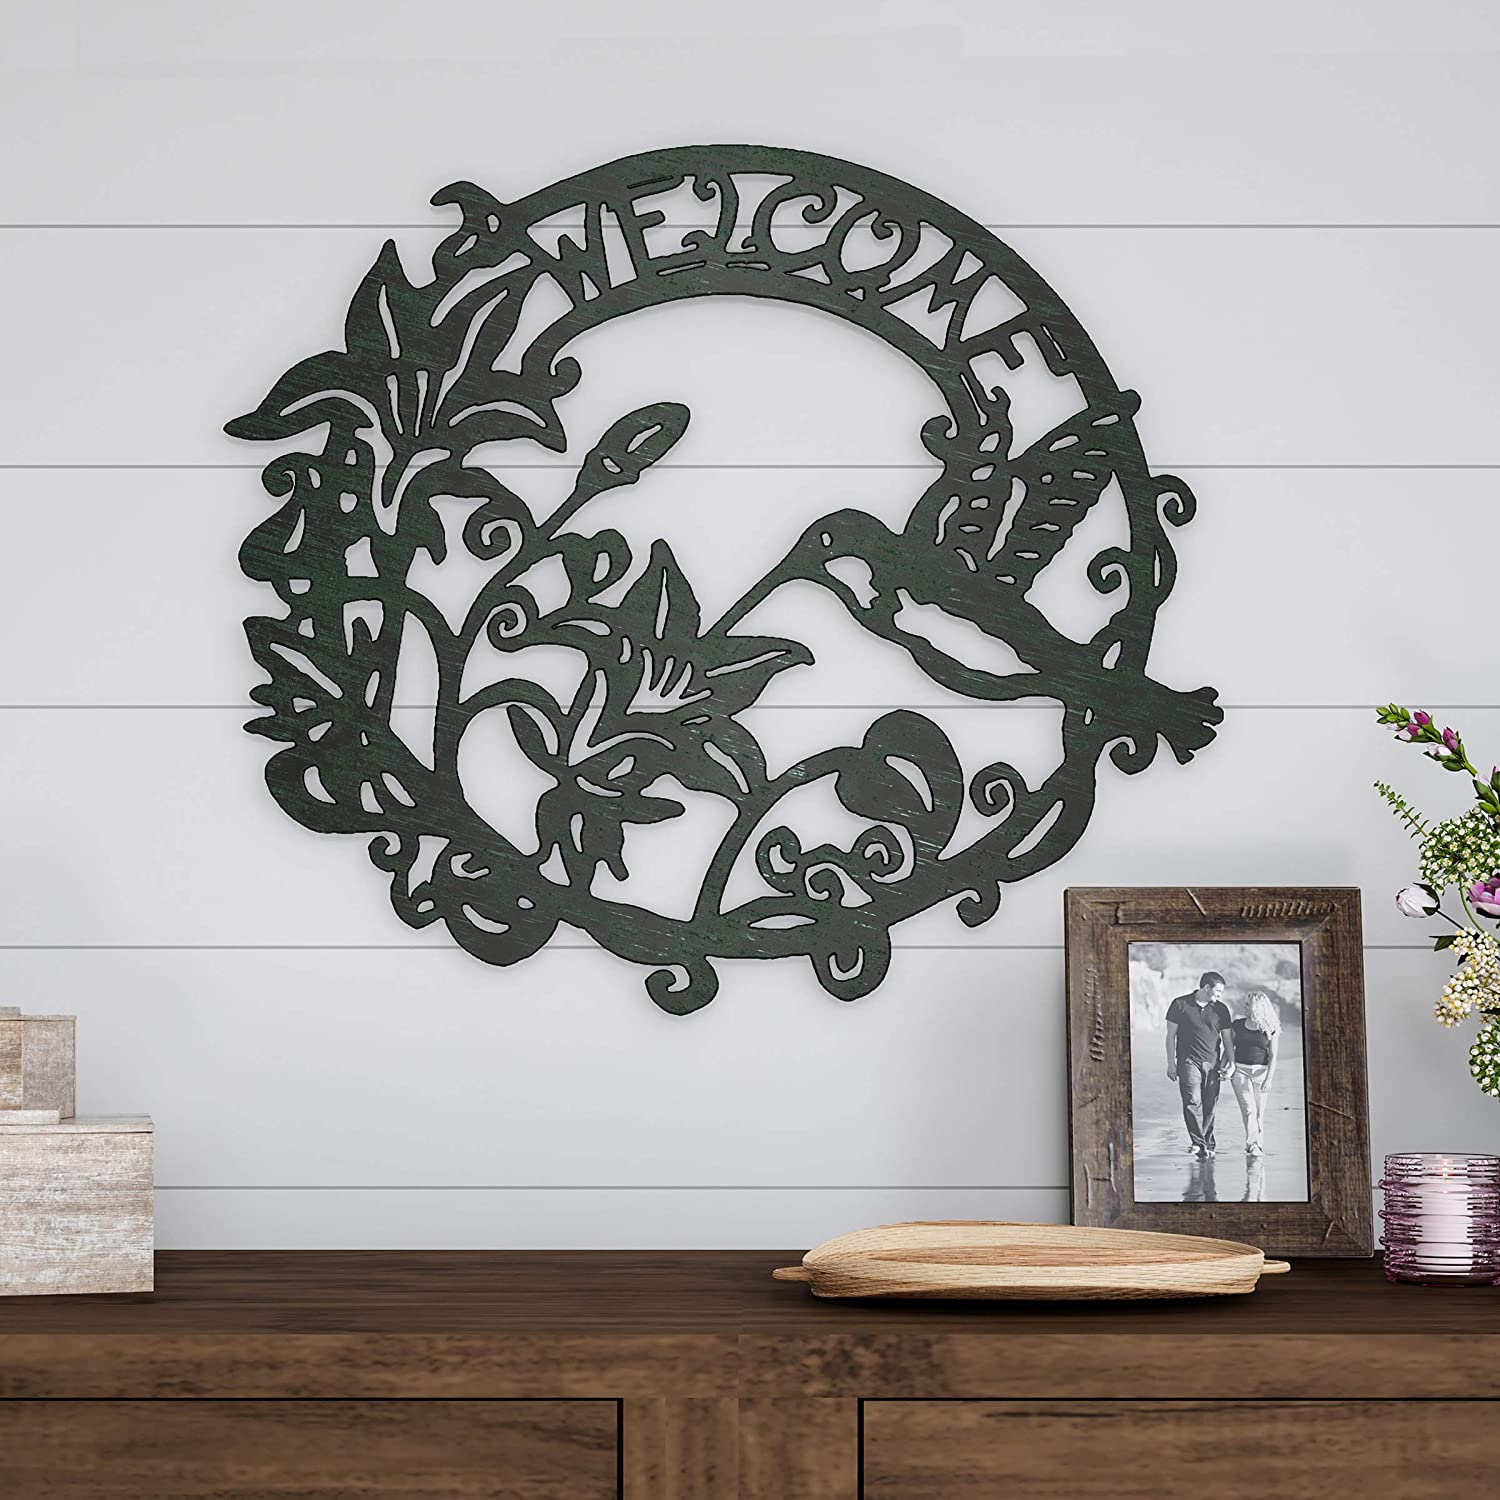 Lavish Home Metal Cutout Welcome Decorative Wall Sign Wreath-Word Art Accent-Perfect for Modern Rustic or Vintage Farmhouse Style